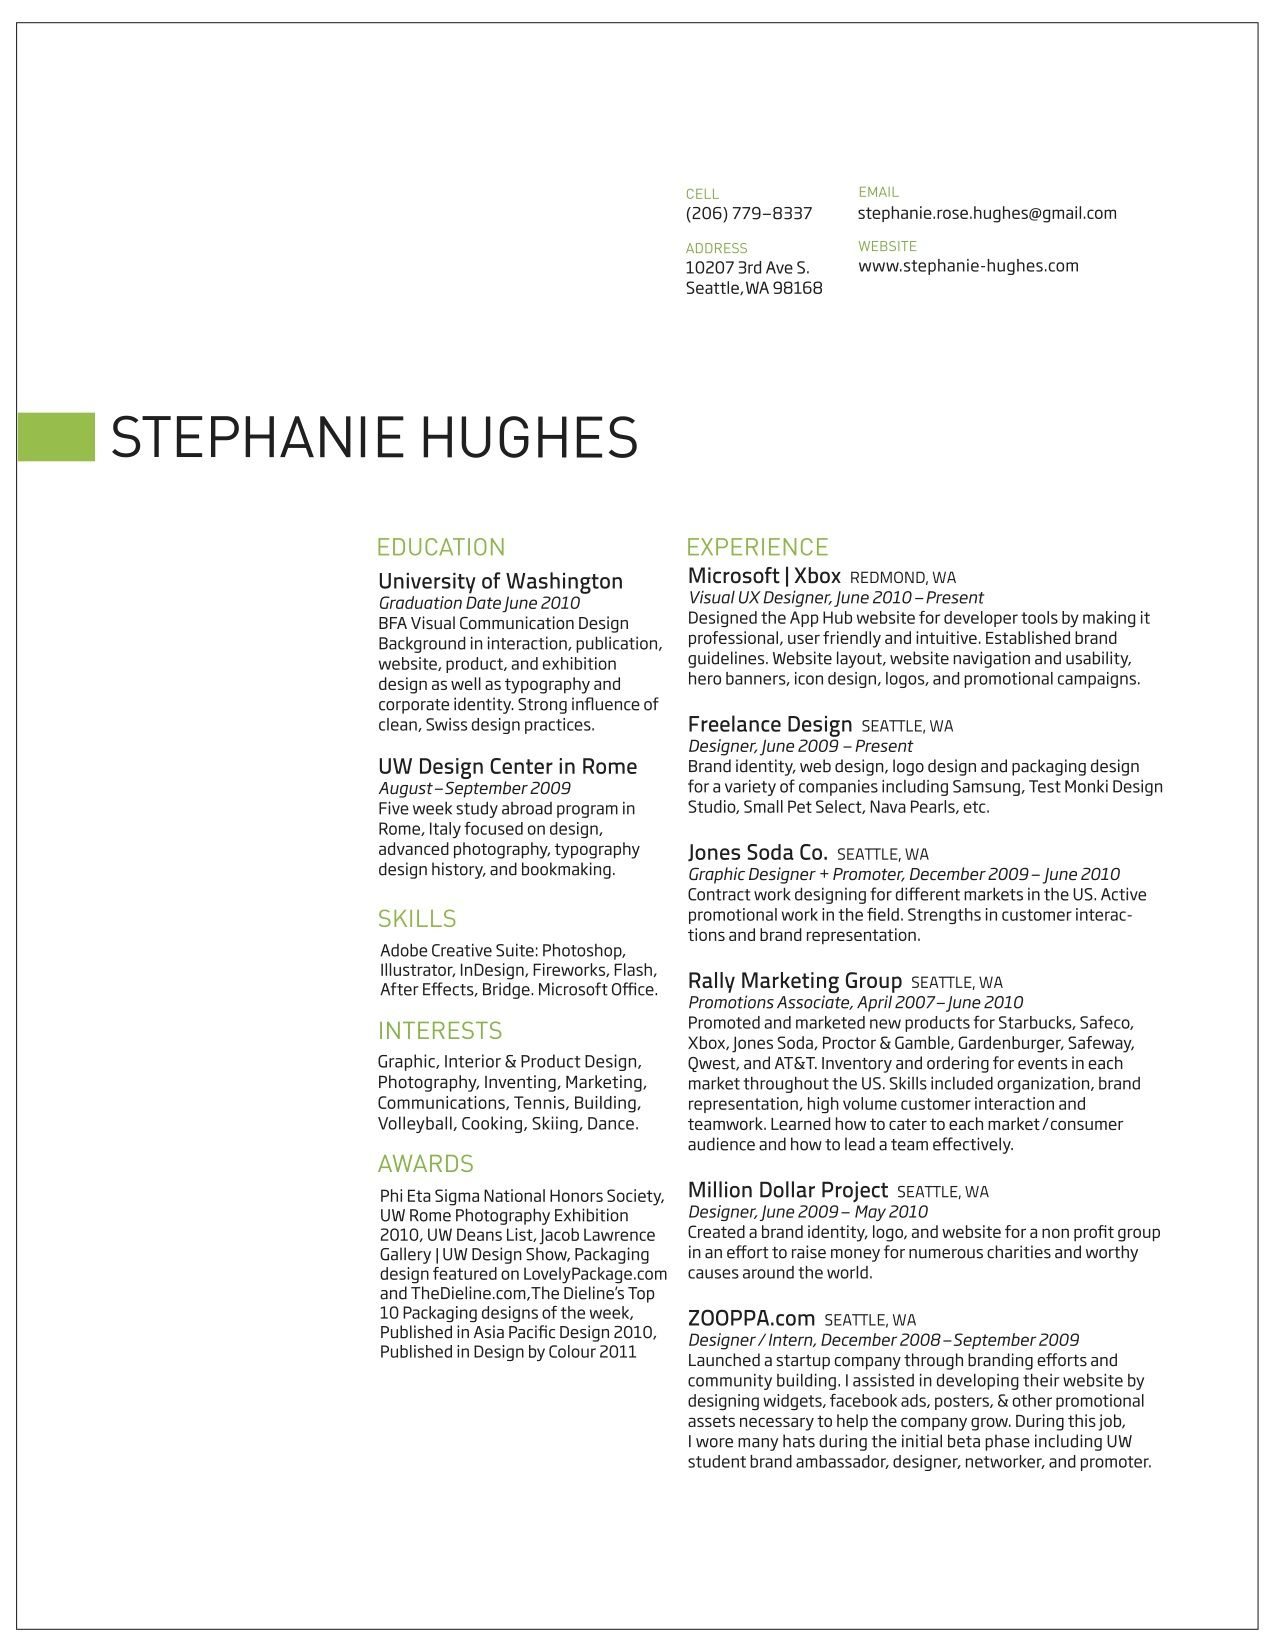 Love This Resume White Space Really Works Even Though There Is A